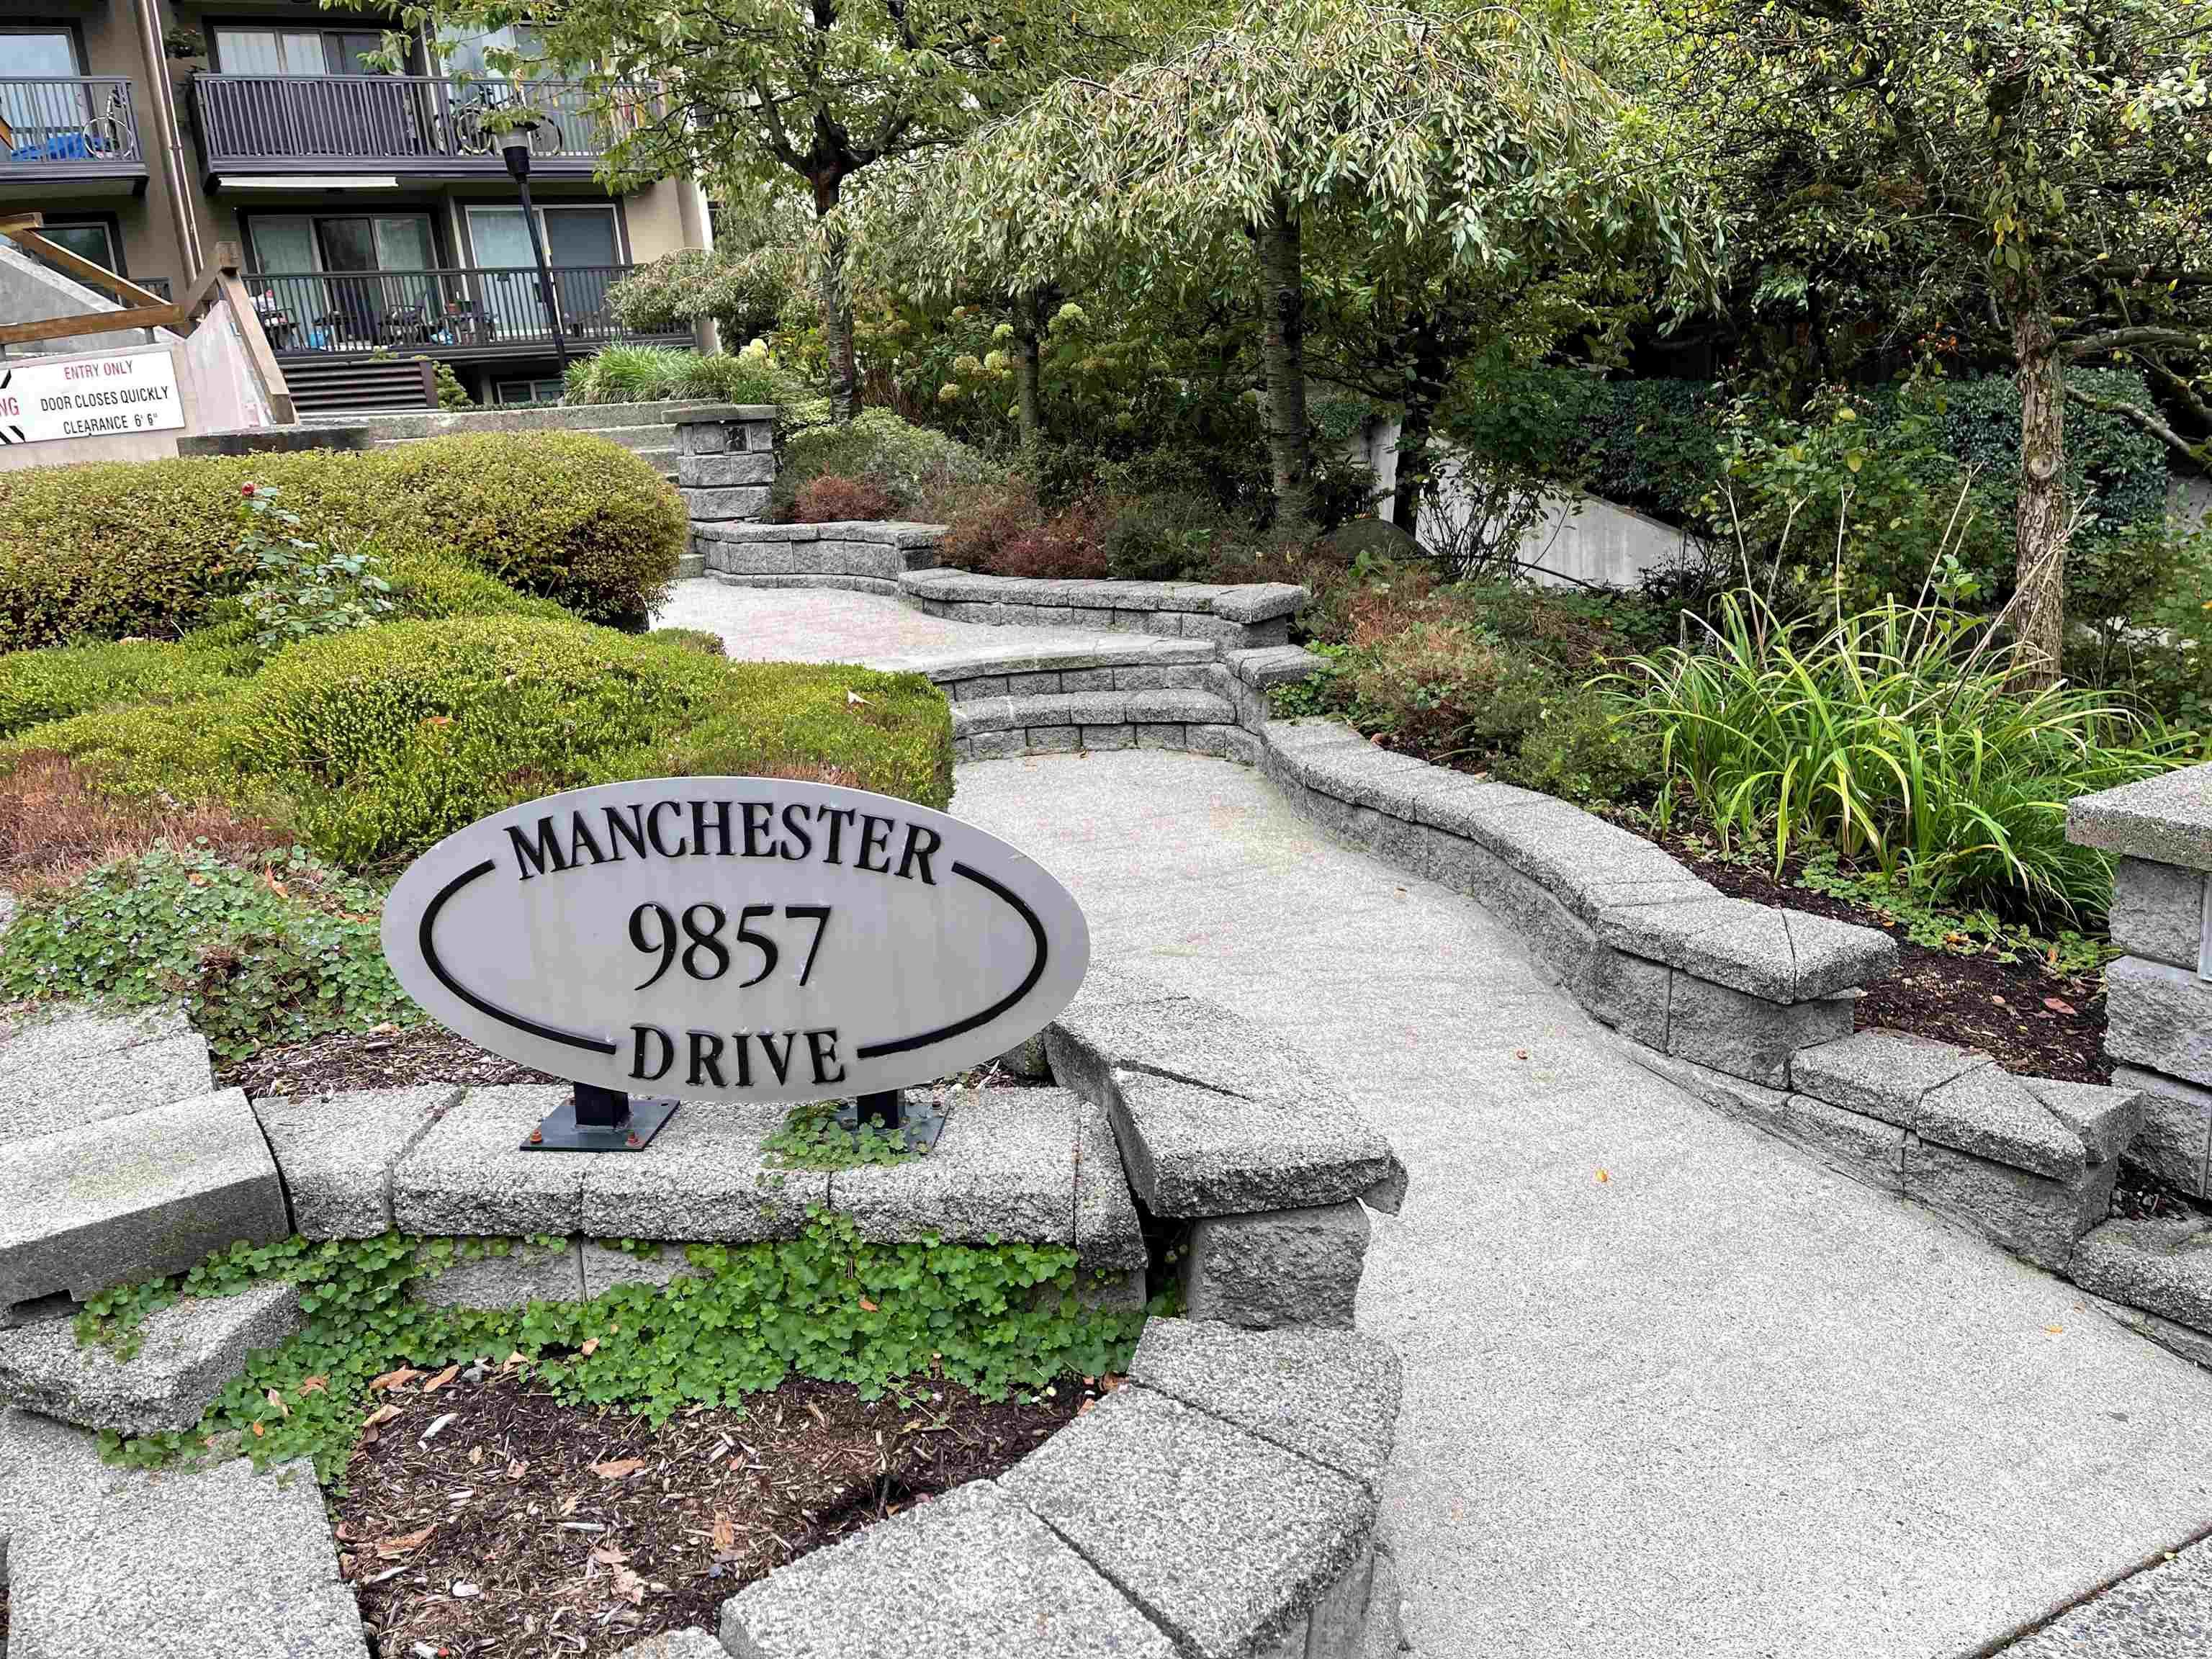 """Main Photo: 408 9857 MANCHESTER Drive in Burnaby: Cariboo Condo for sale in """"BARCLAY WOODS"""" (Burnaby North)  : MLS®# R2624067"""